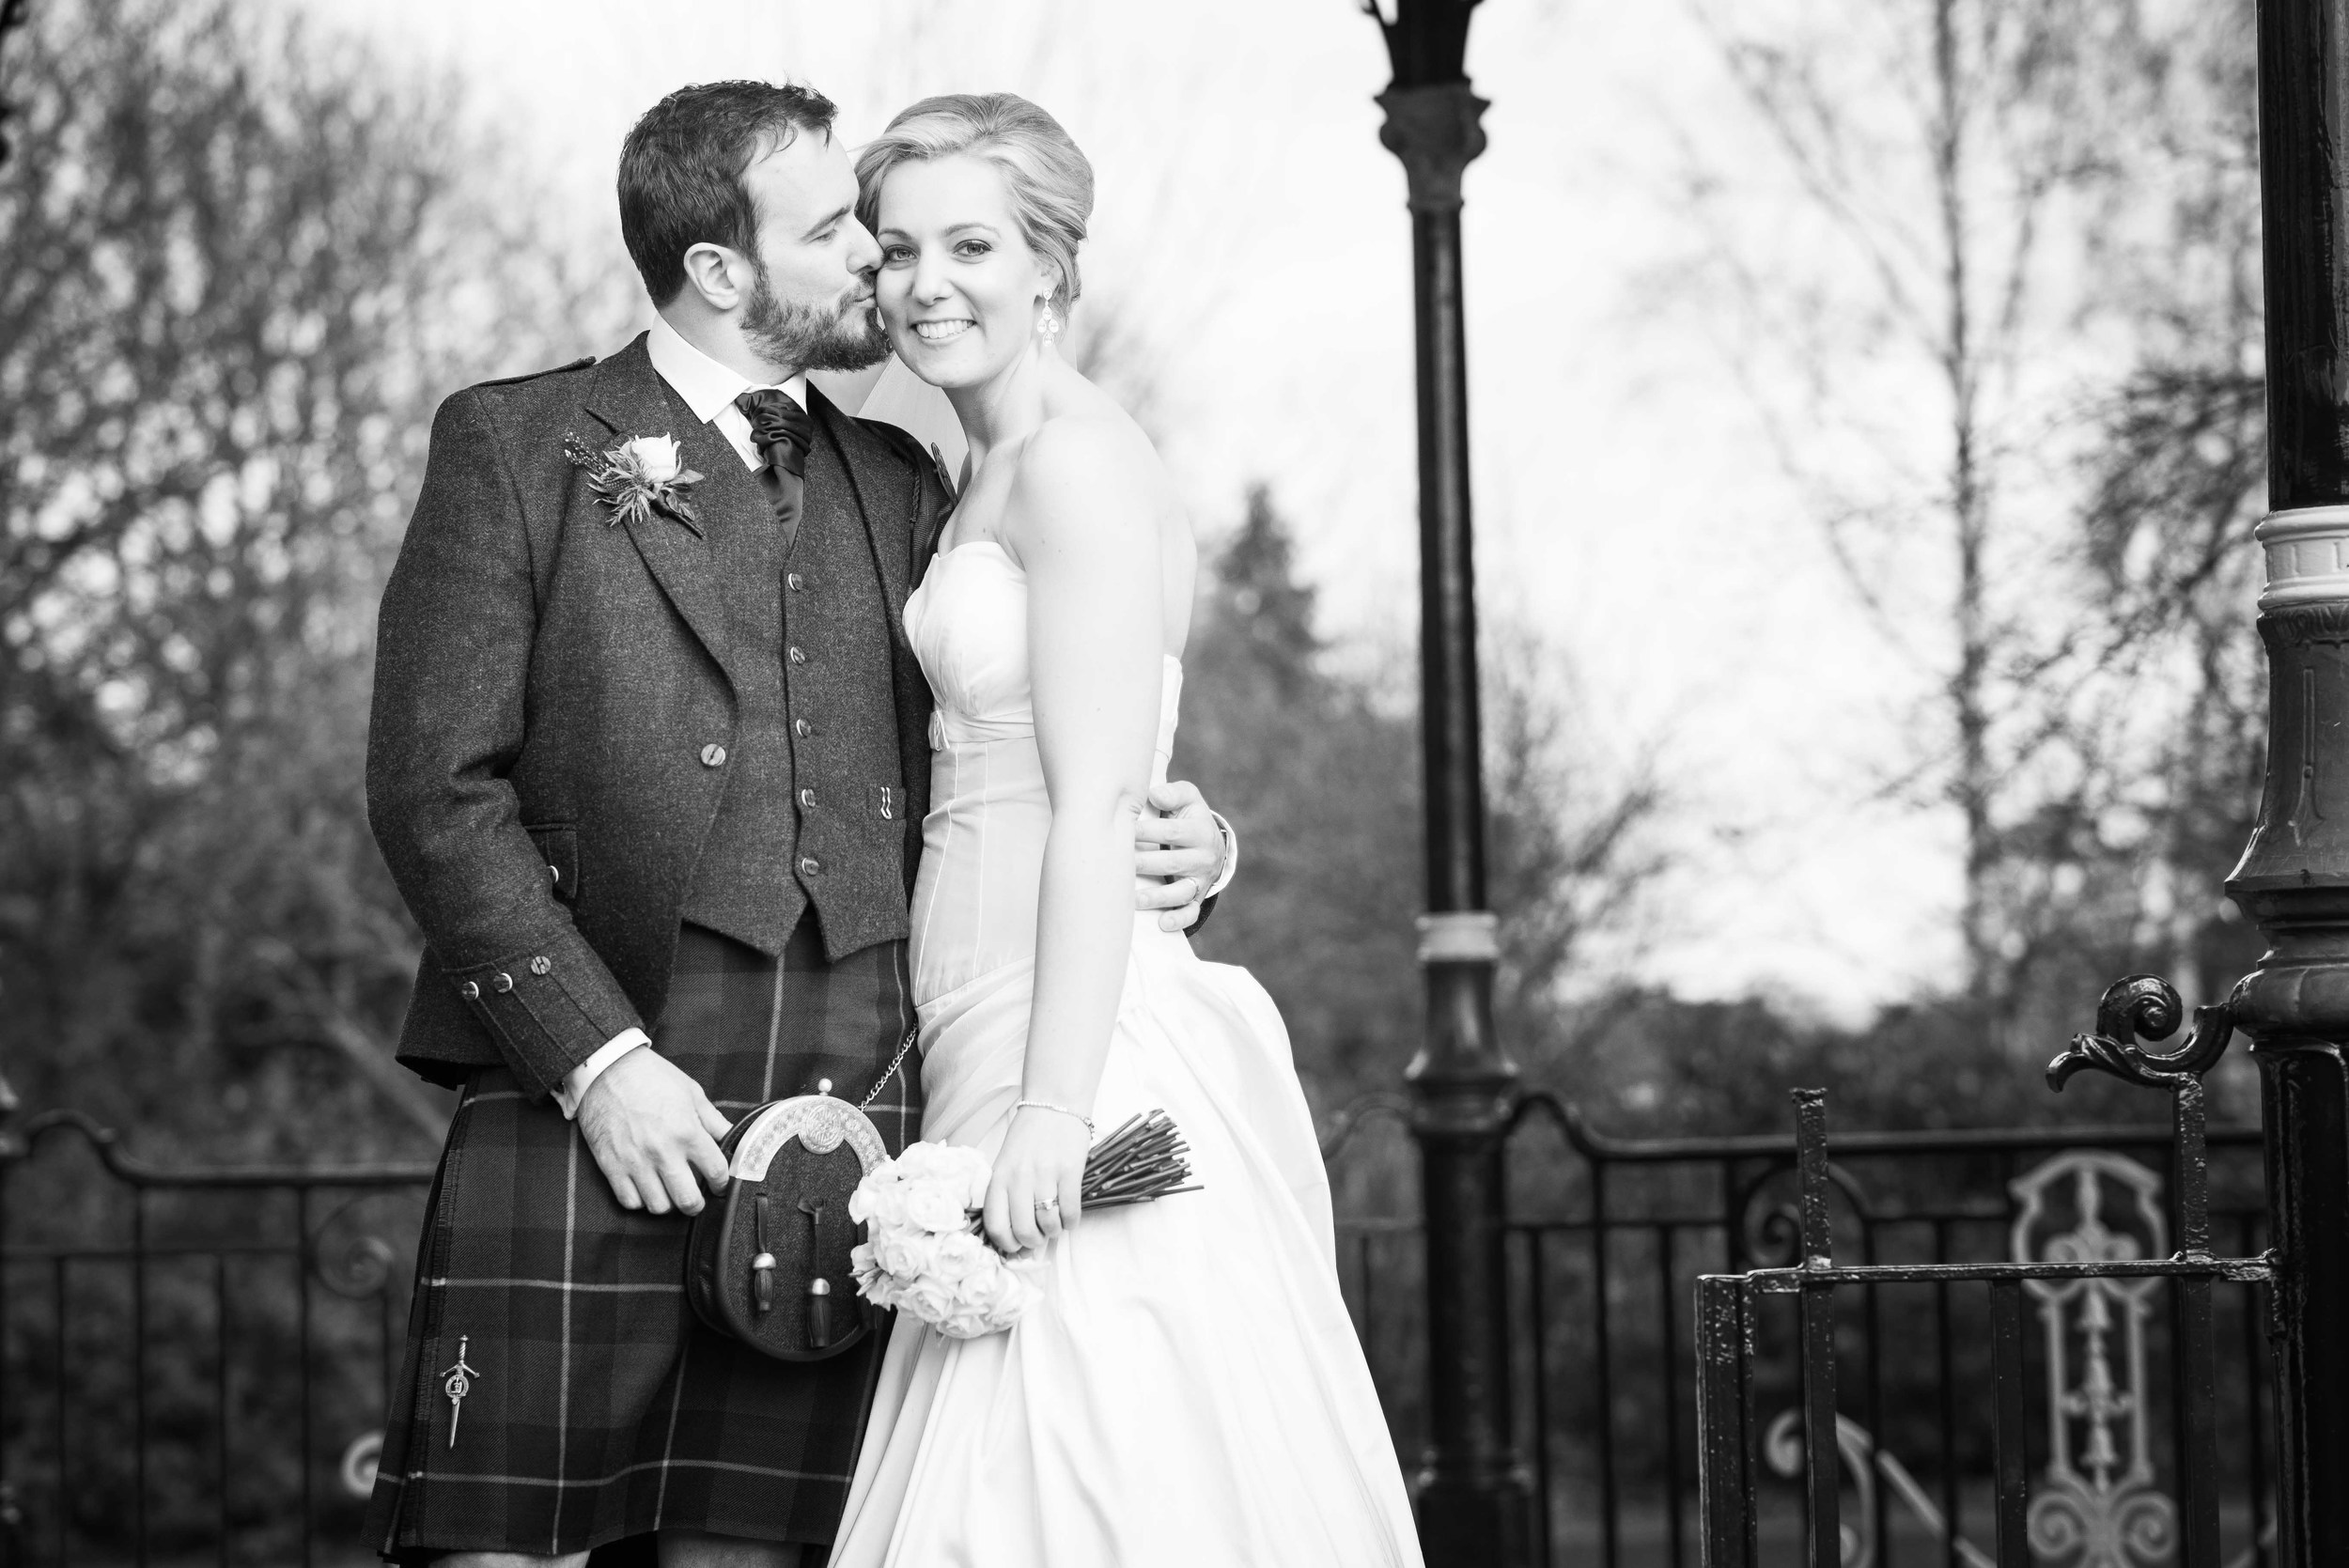 Laura & Alan's Wedding at Eskmills, Musselburgh.